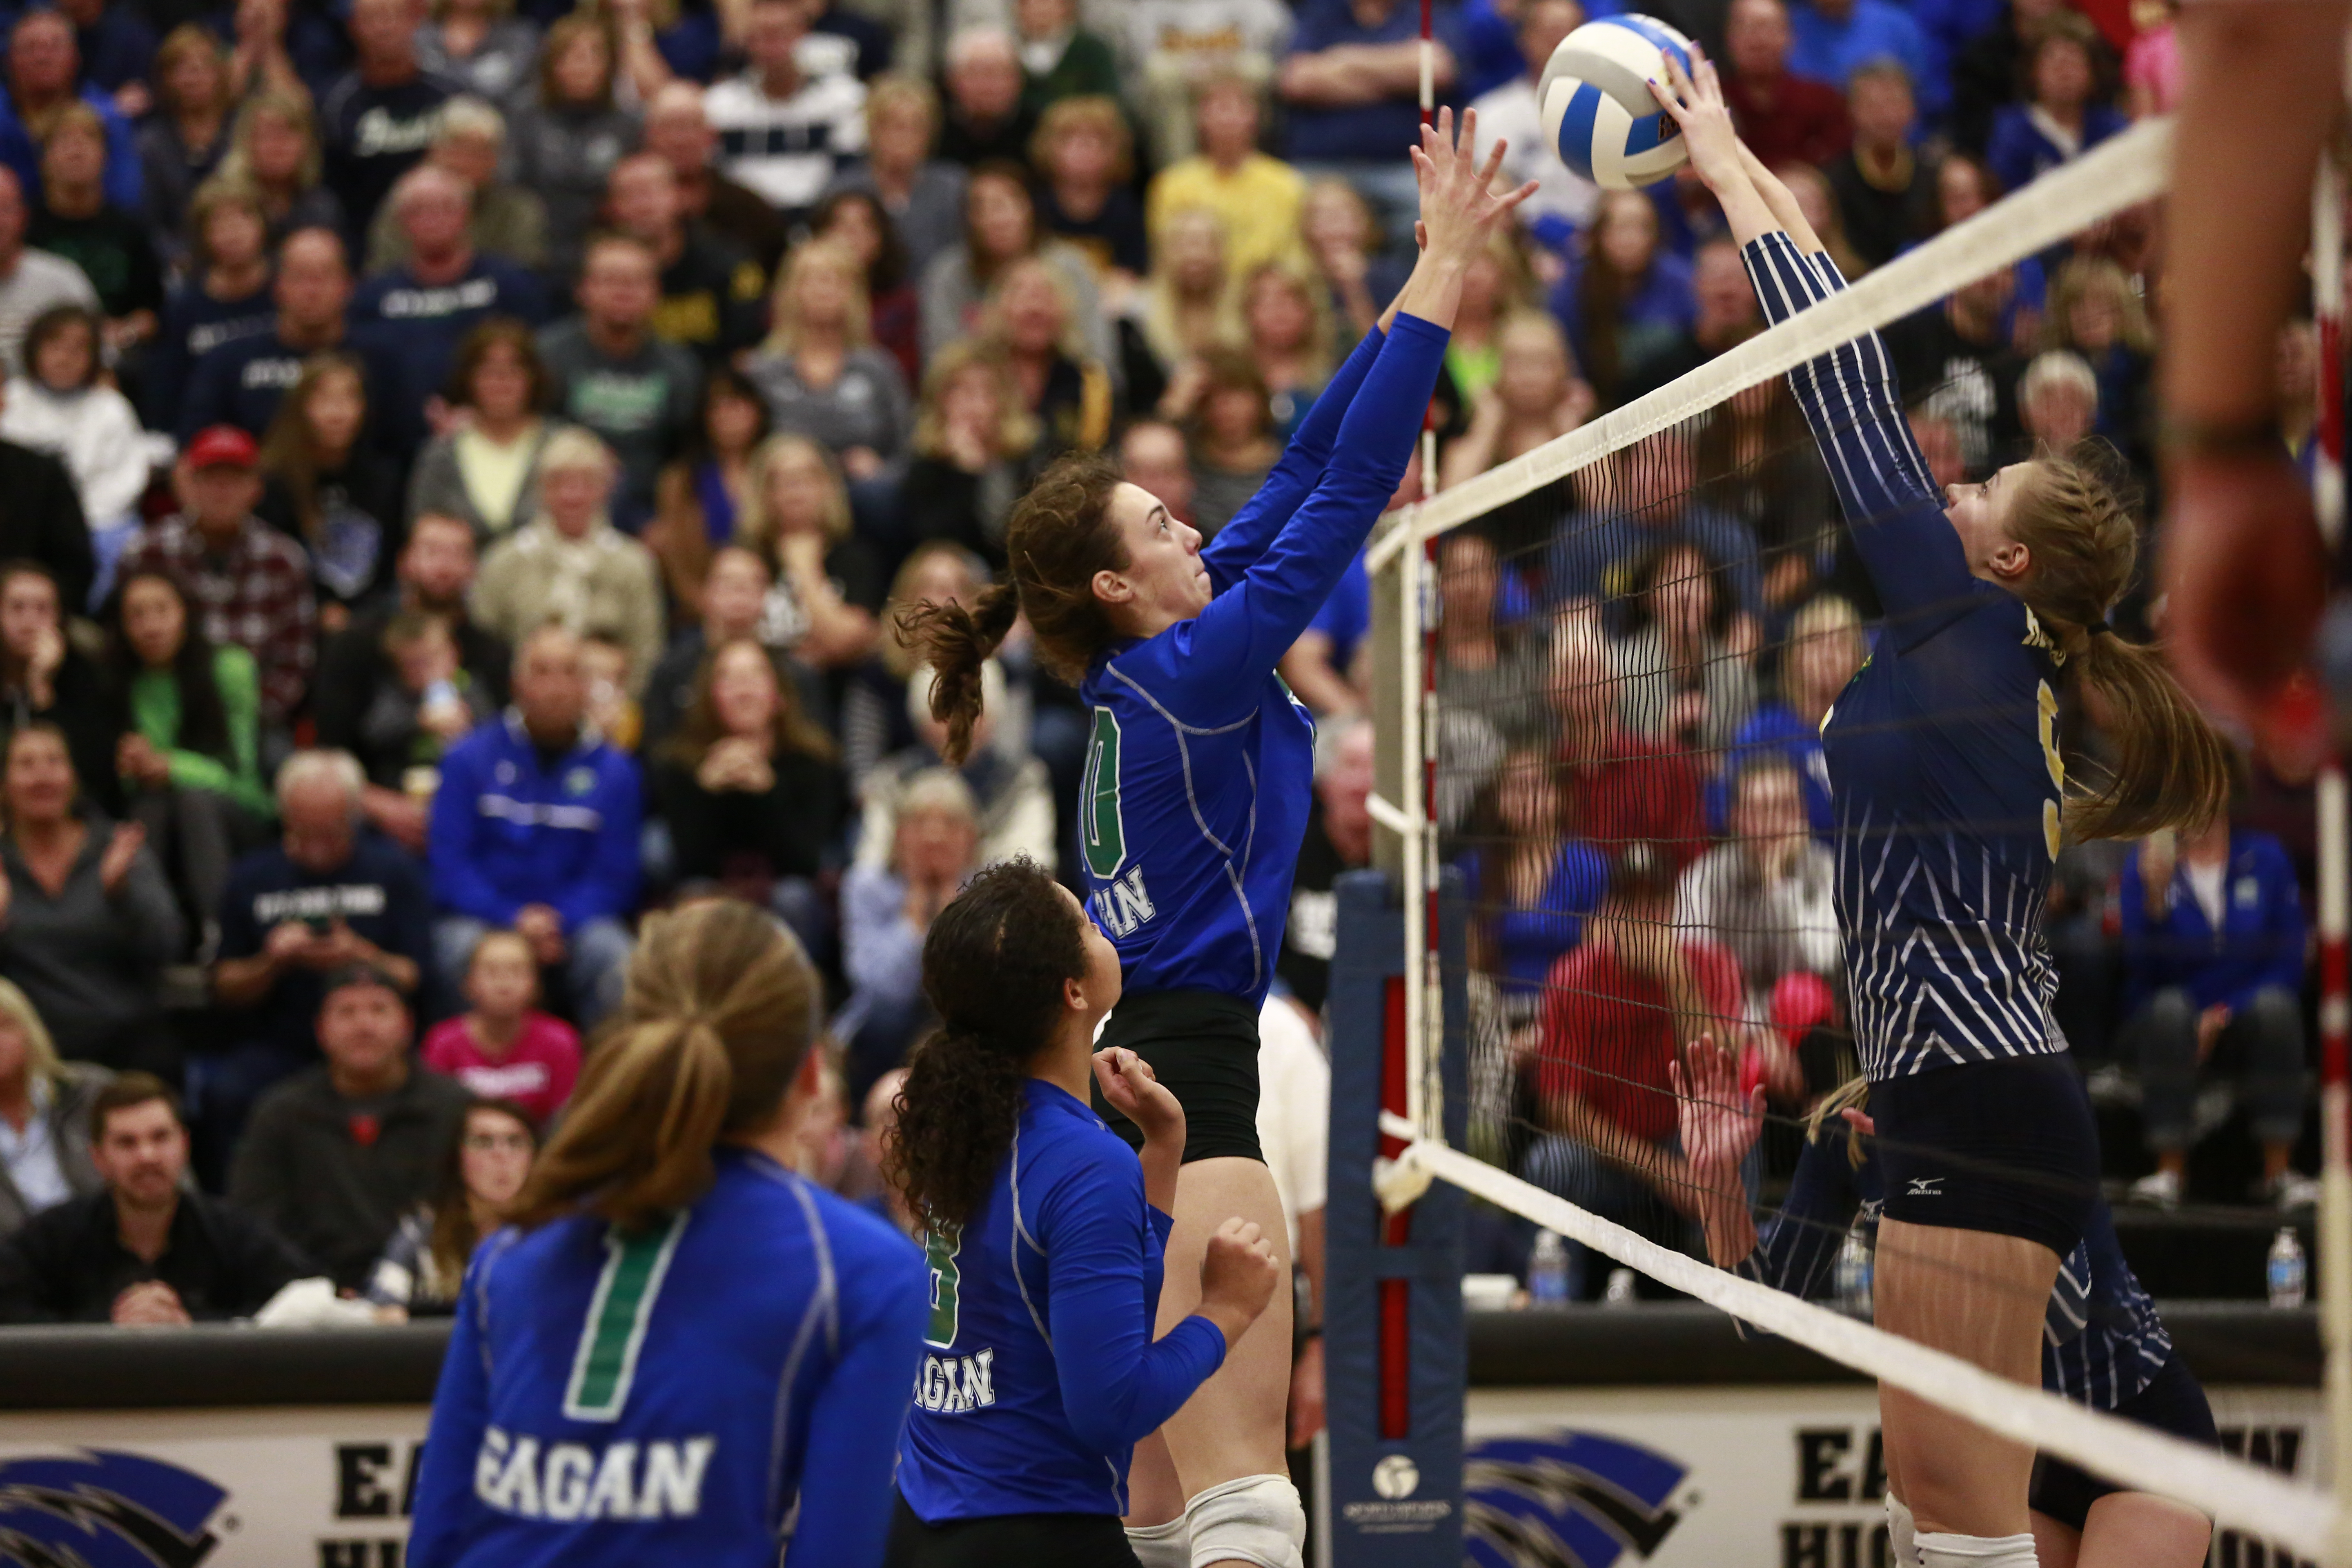 Eagan escapes with state bid after back-and-forth battle